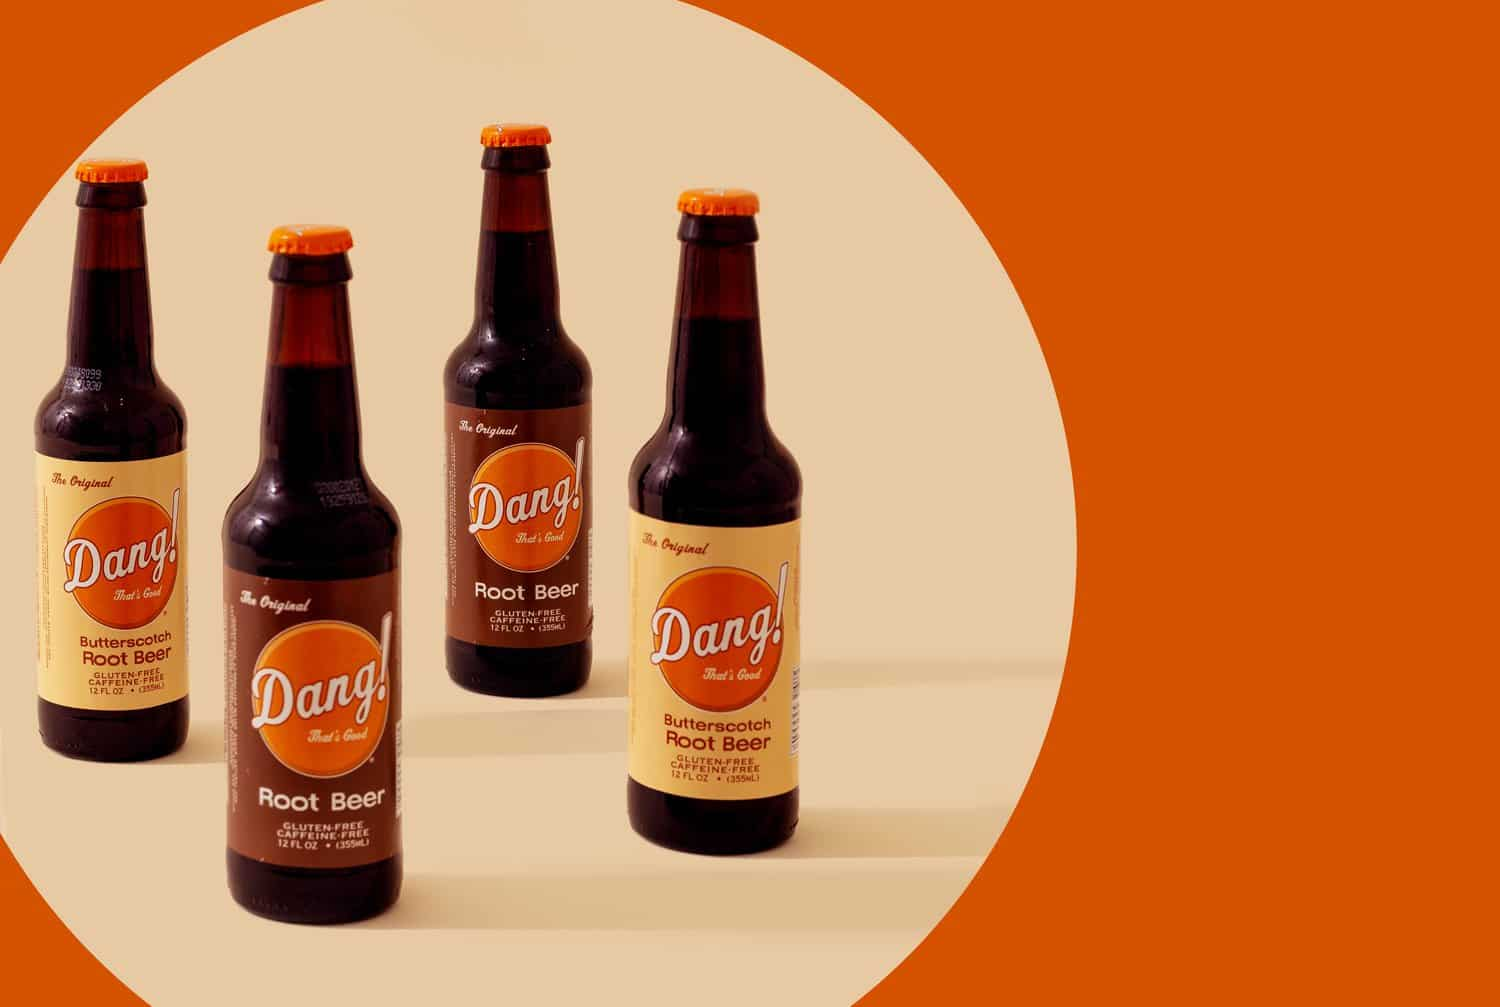 dang-thats-good-bottles-graphic-orange